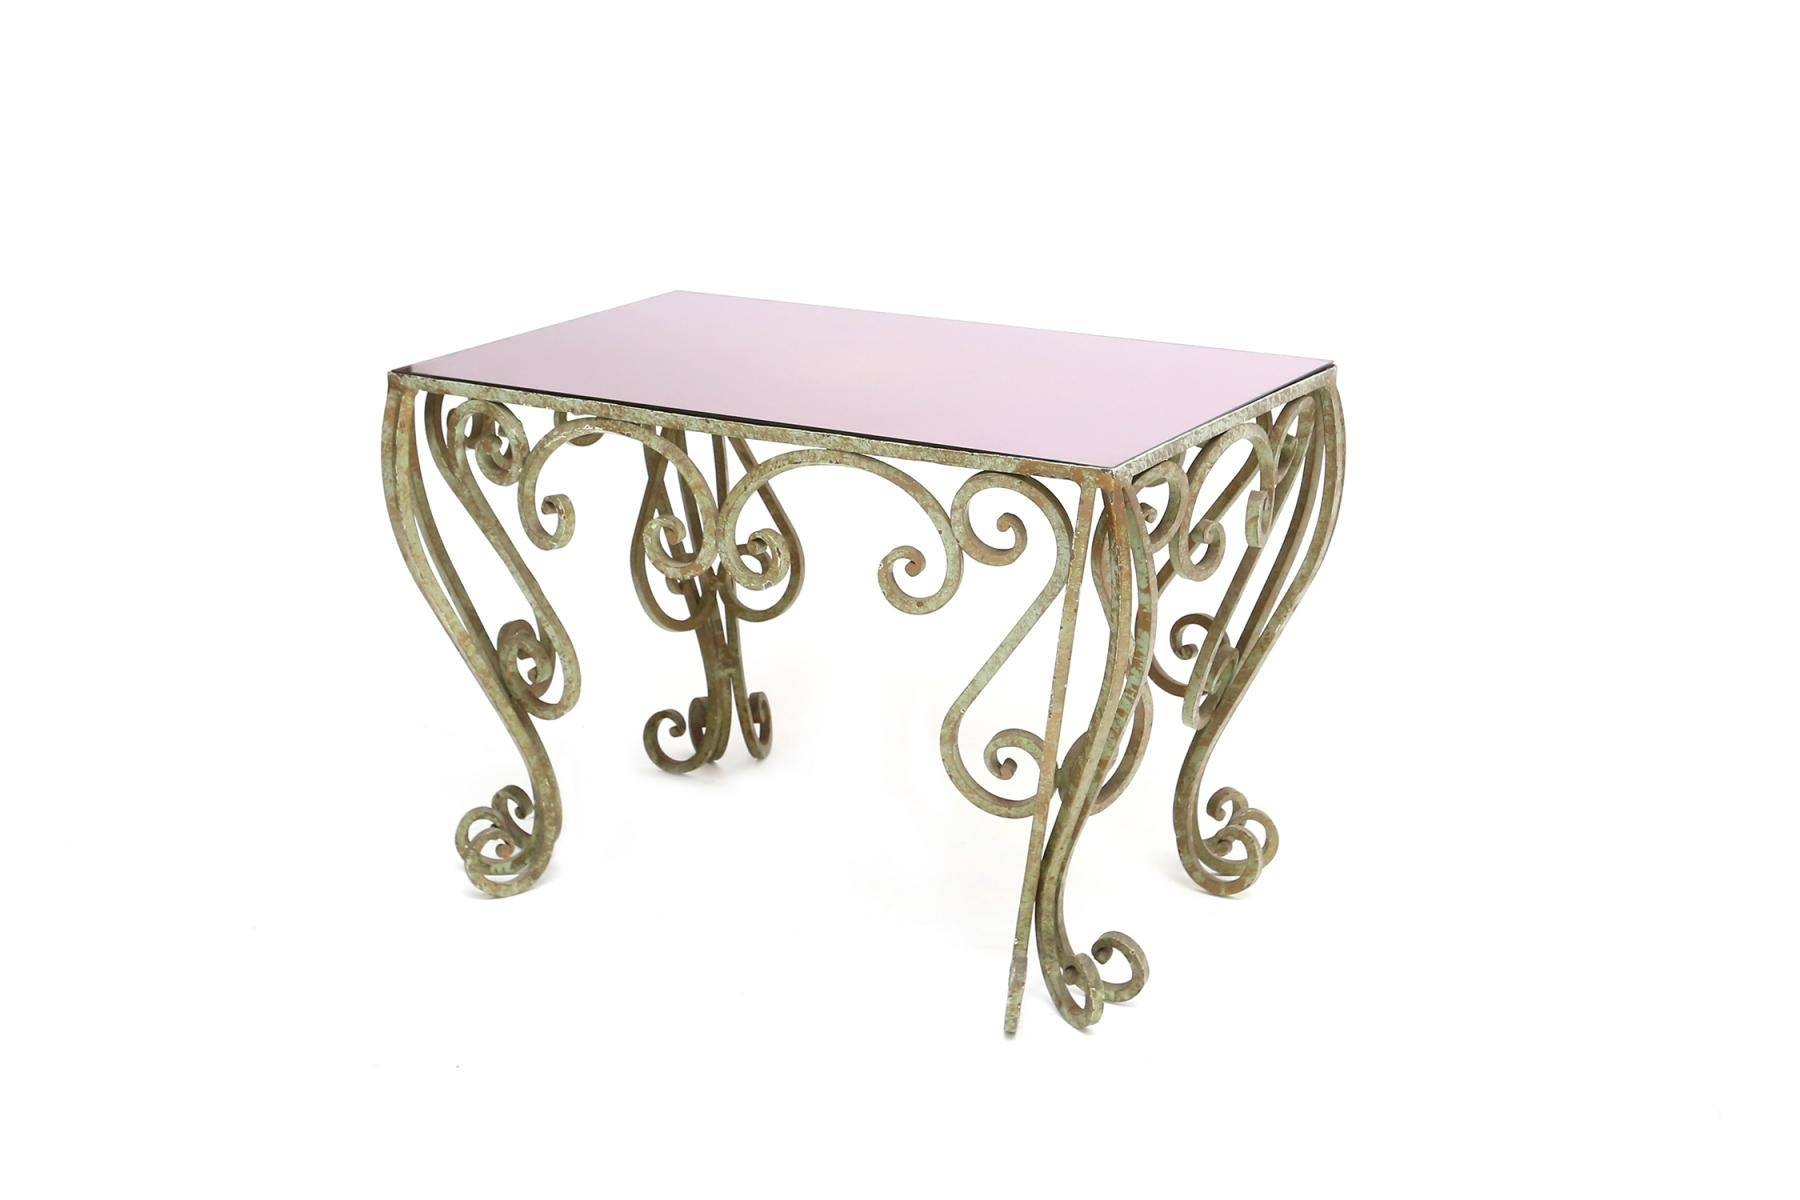 Wrought Iron Coffee Table With Purple Mirrored Glass For Sale At within Wrought Iron Coffee Tables (Image 26 of 30)